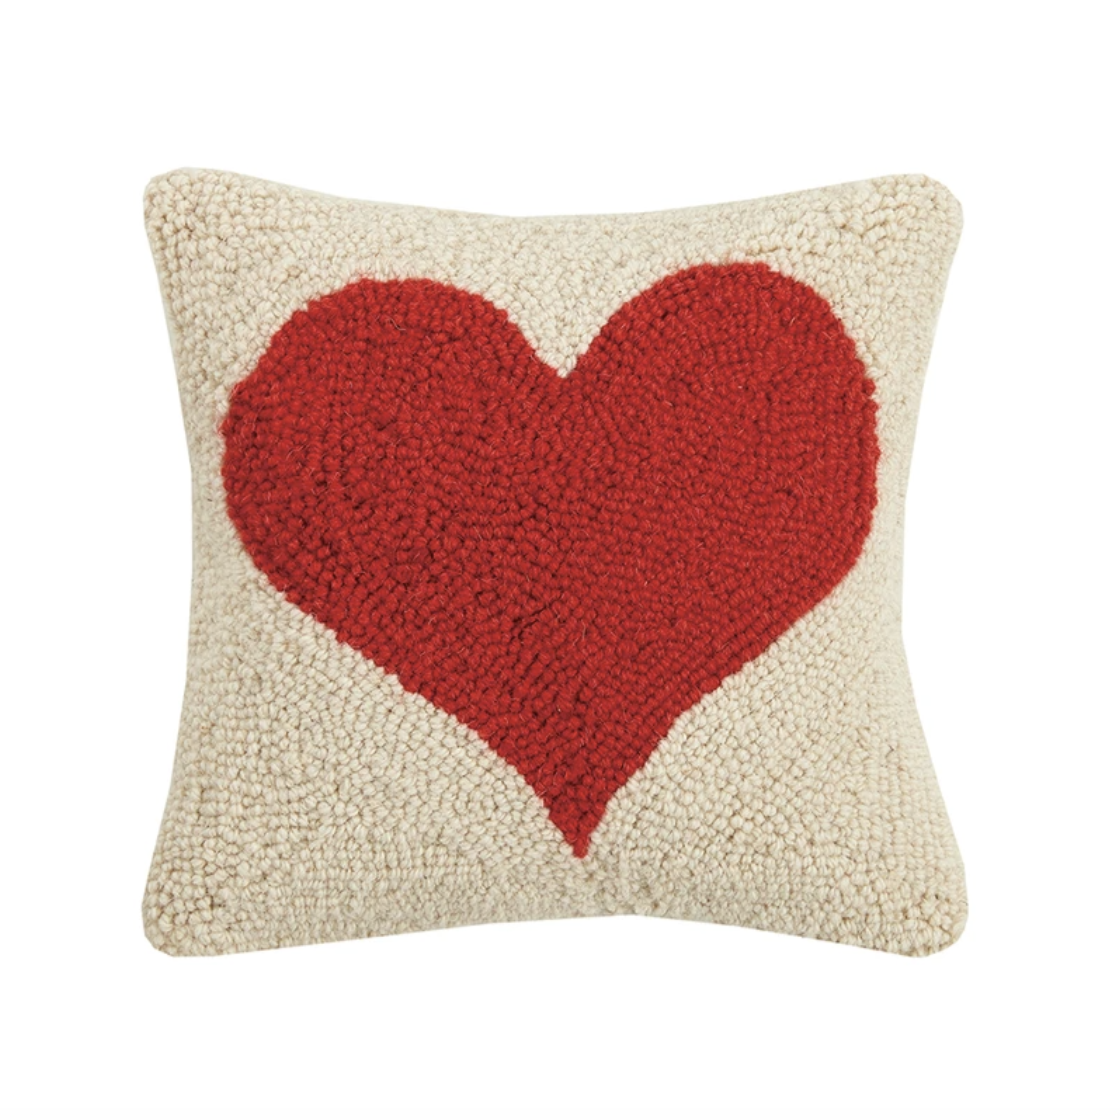 Valentine's day gift guide | The House That Lars Built